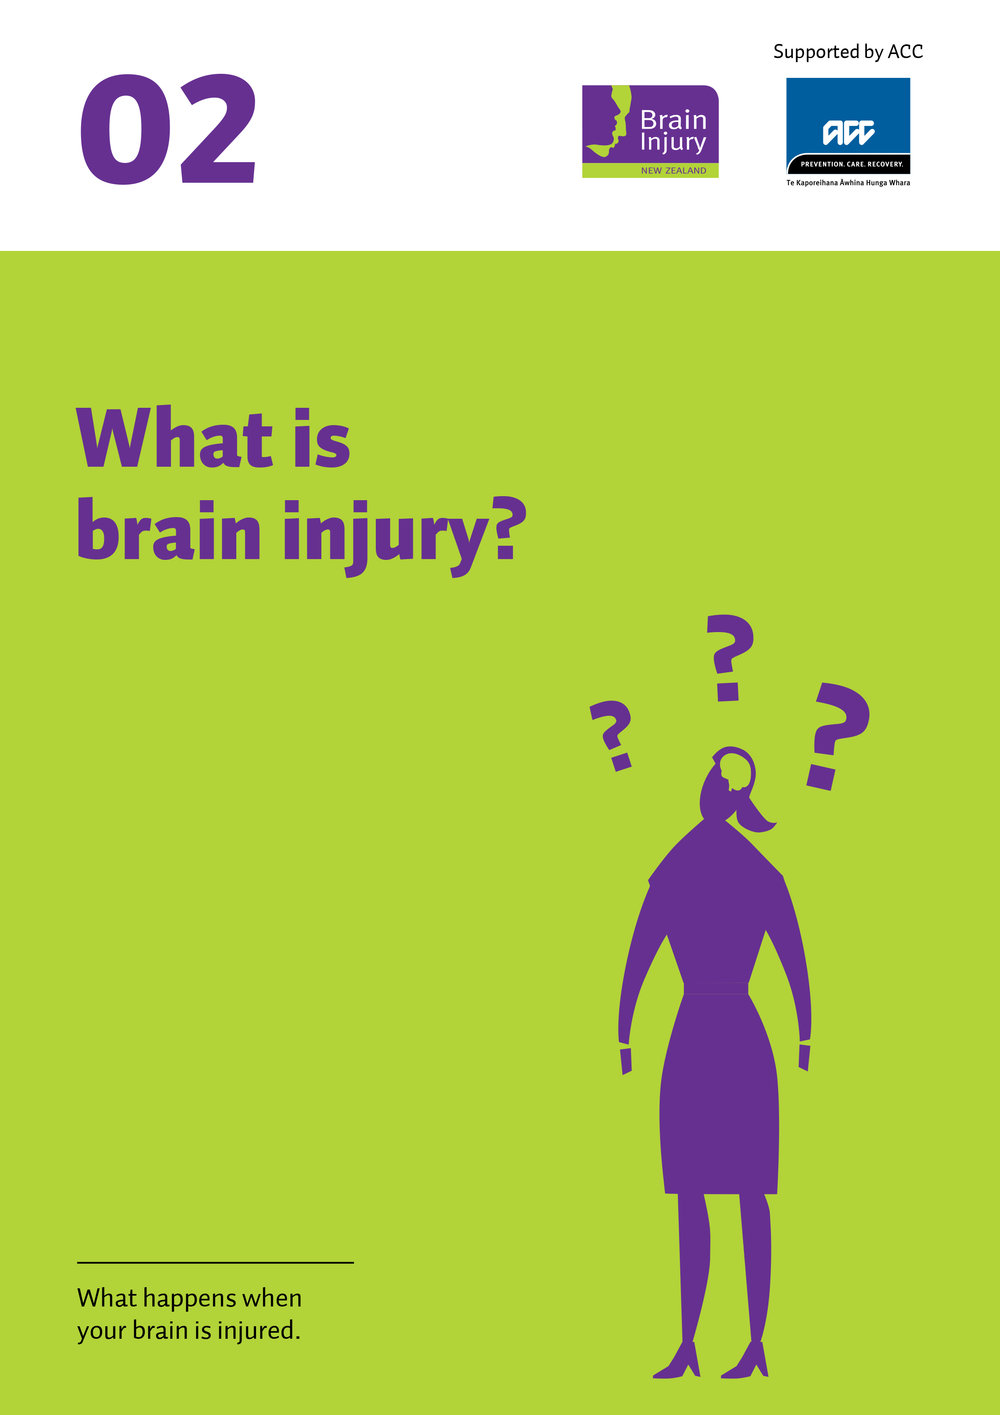 02 What is brain injury?